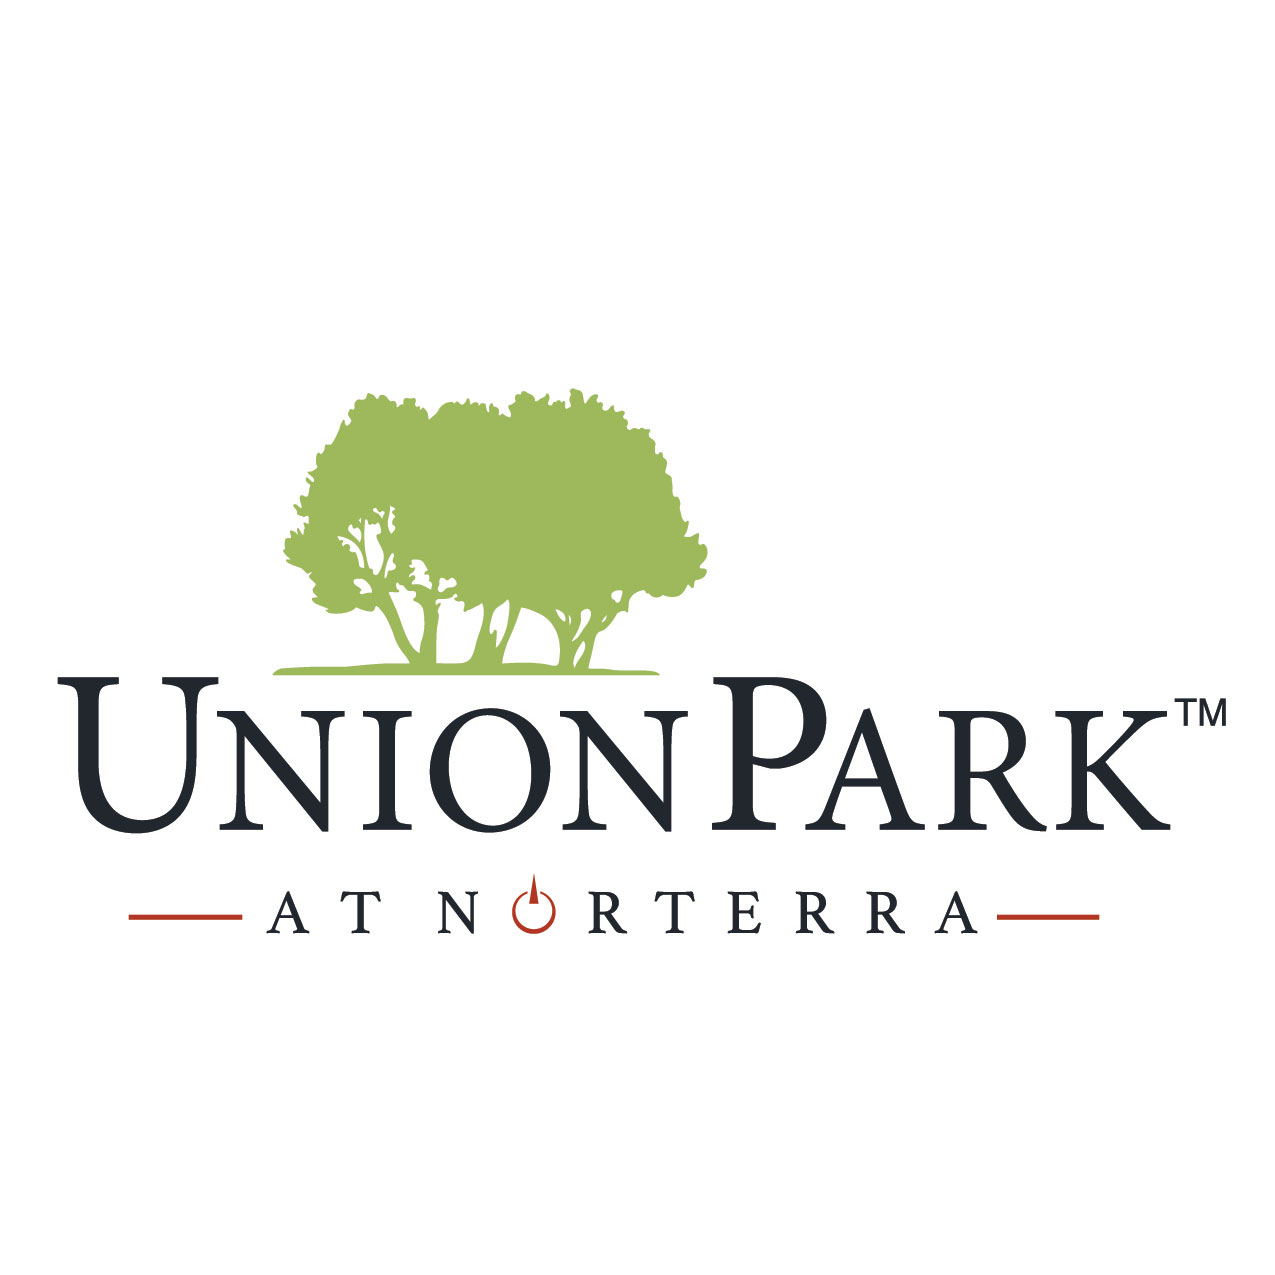 Union Park at Norterra